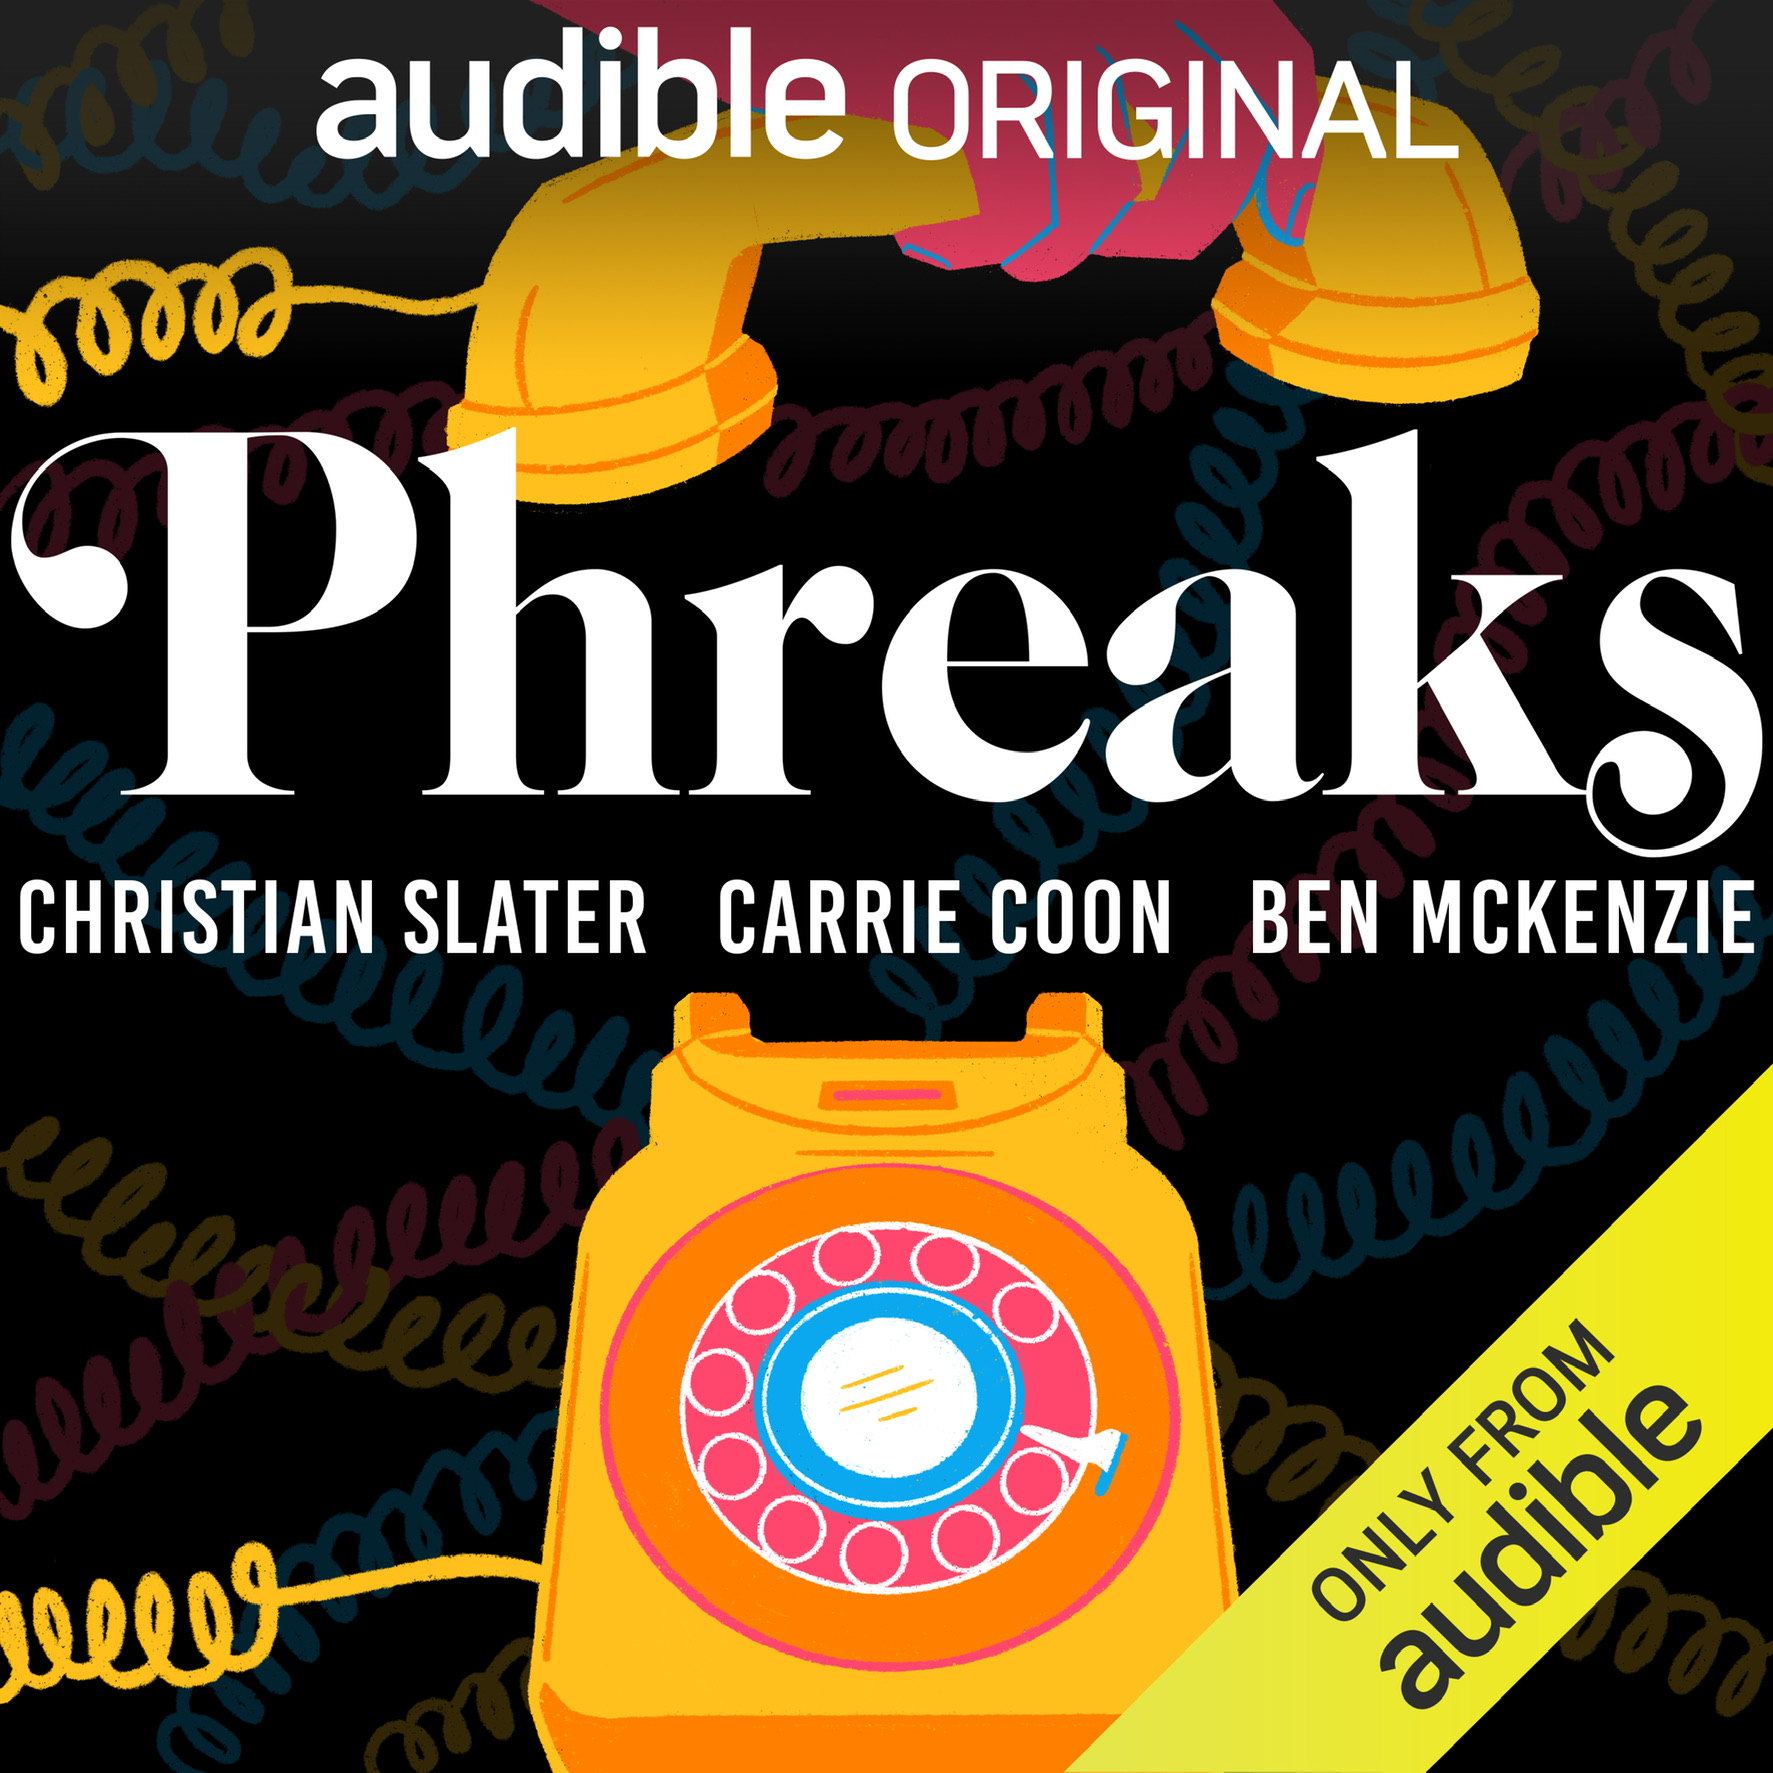 Christian Slater, Bree Klauser, and Carrie Coon in Phreaks (2020)